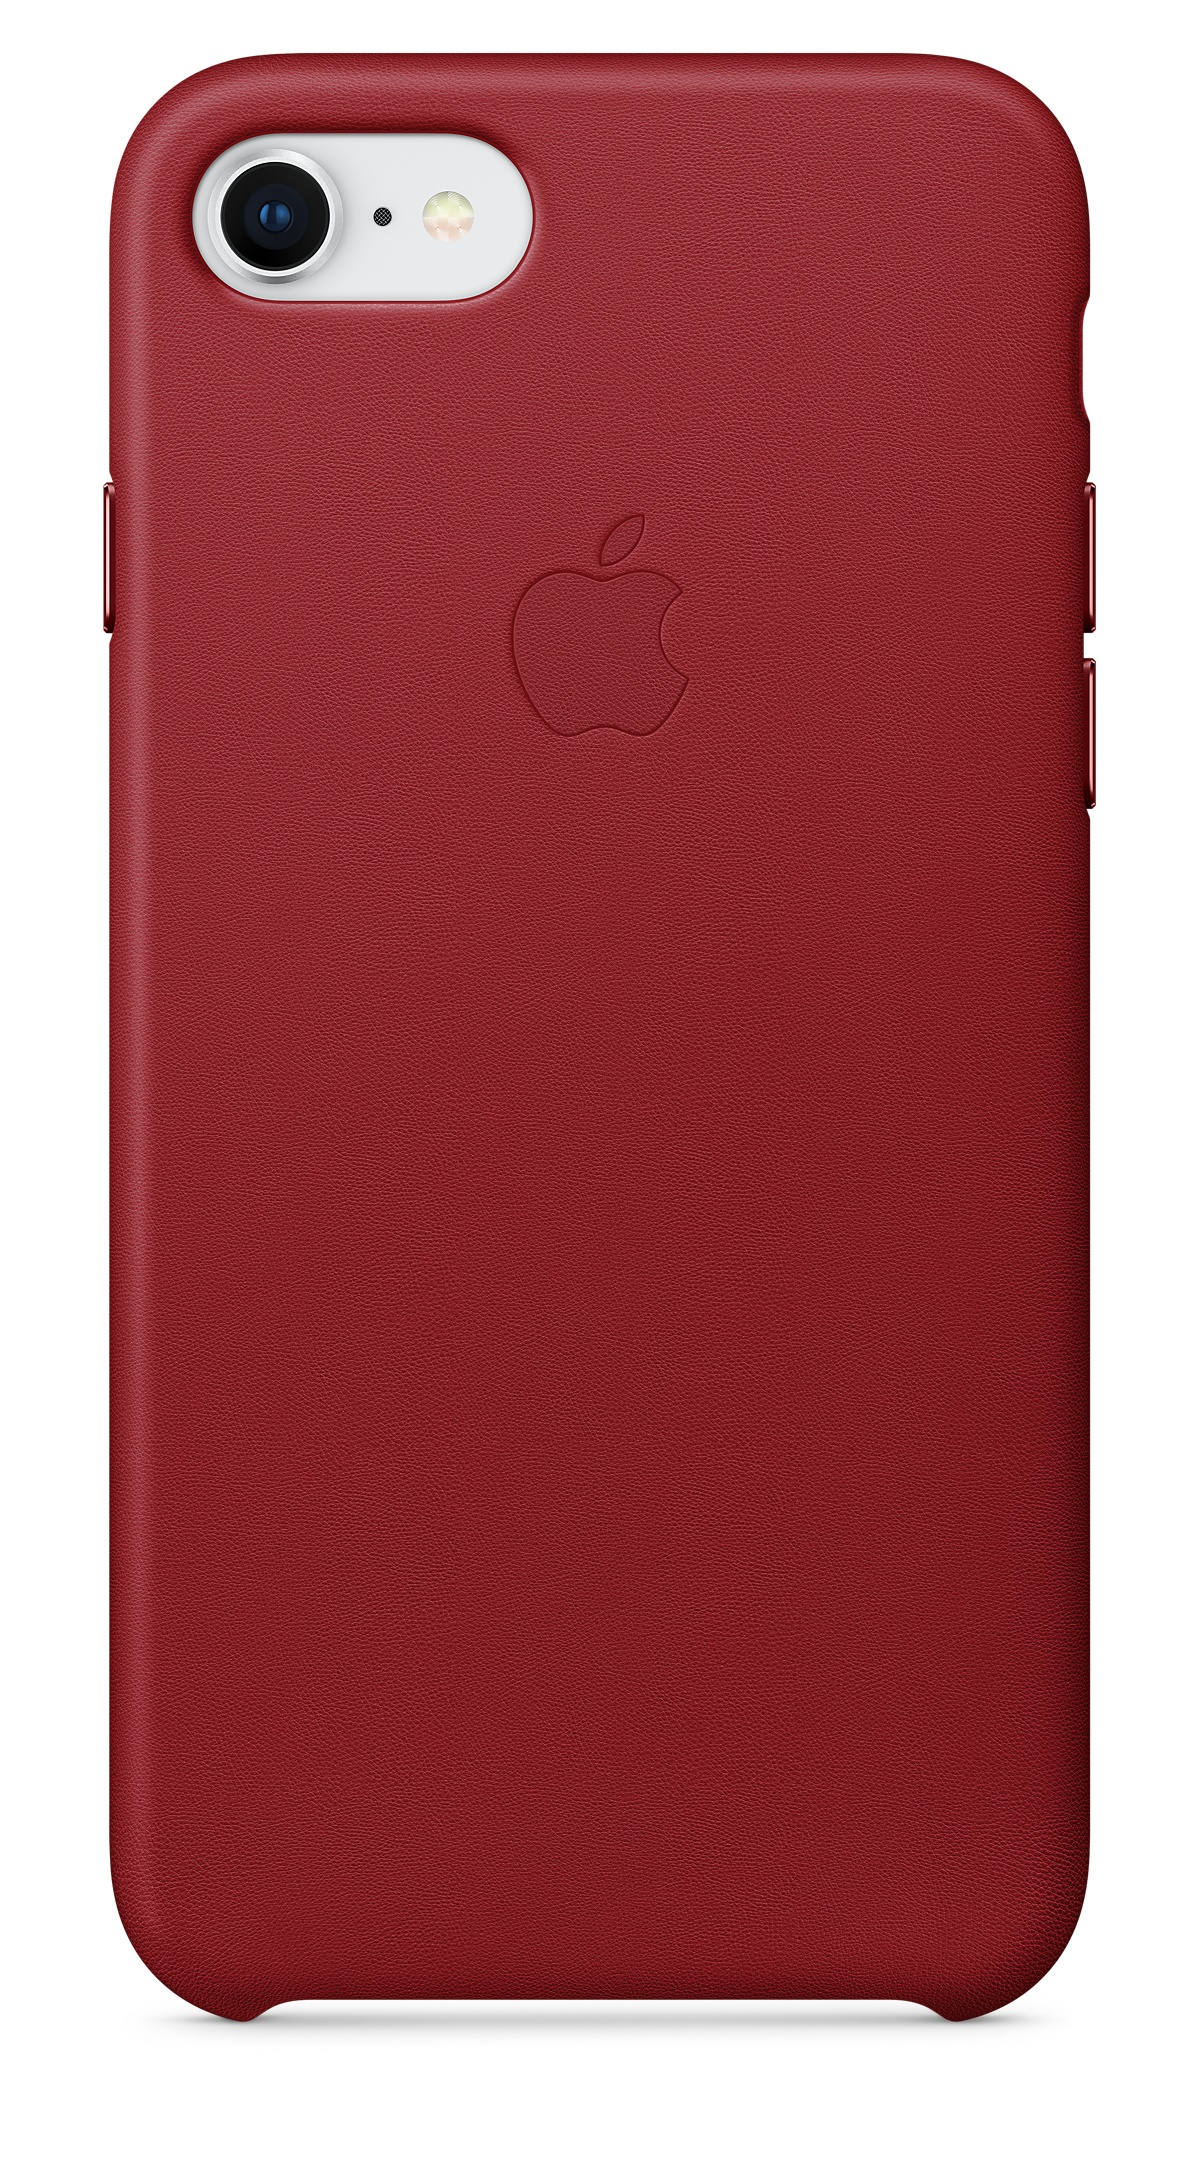 Apple leather case for iPhone 8 red - MQHA2ZM/A